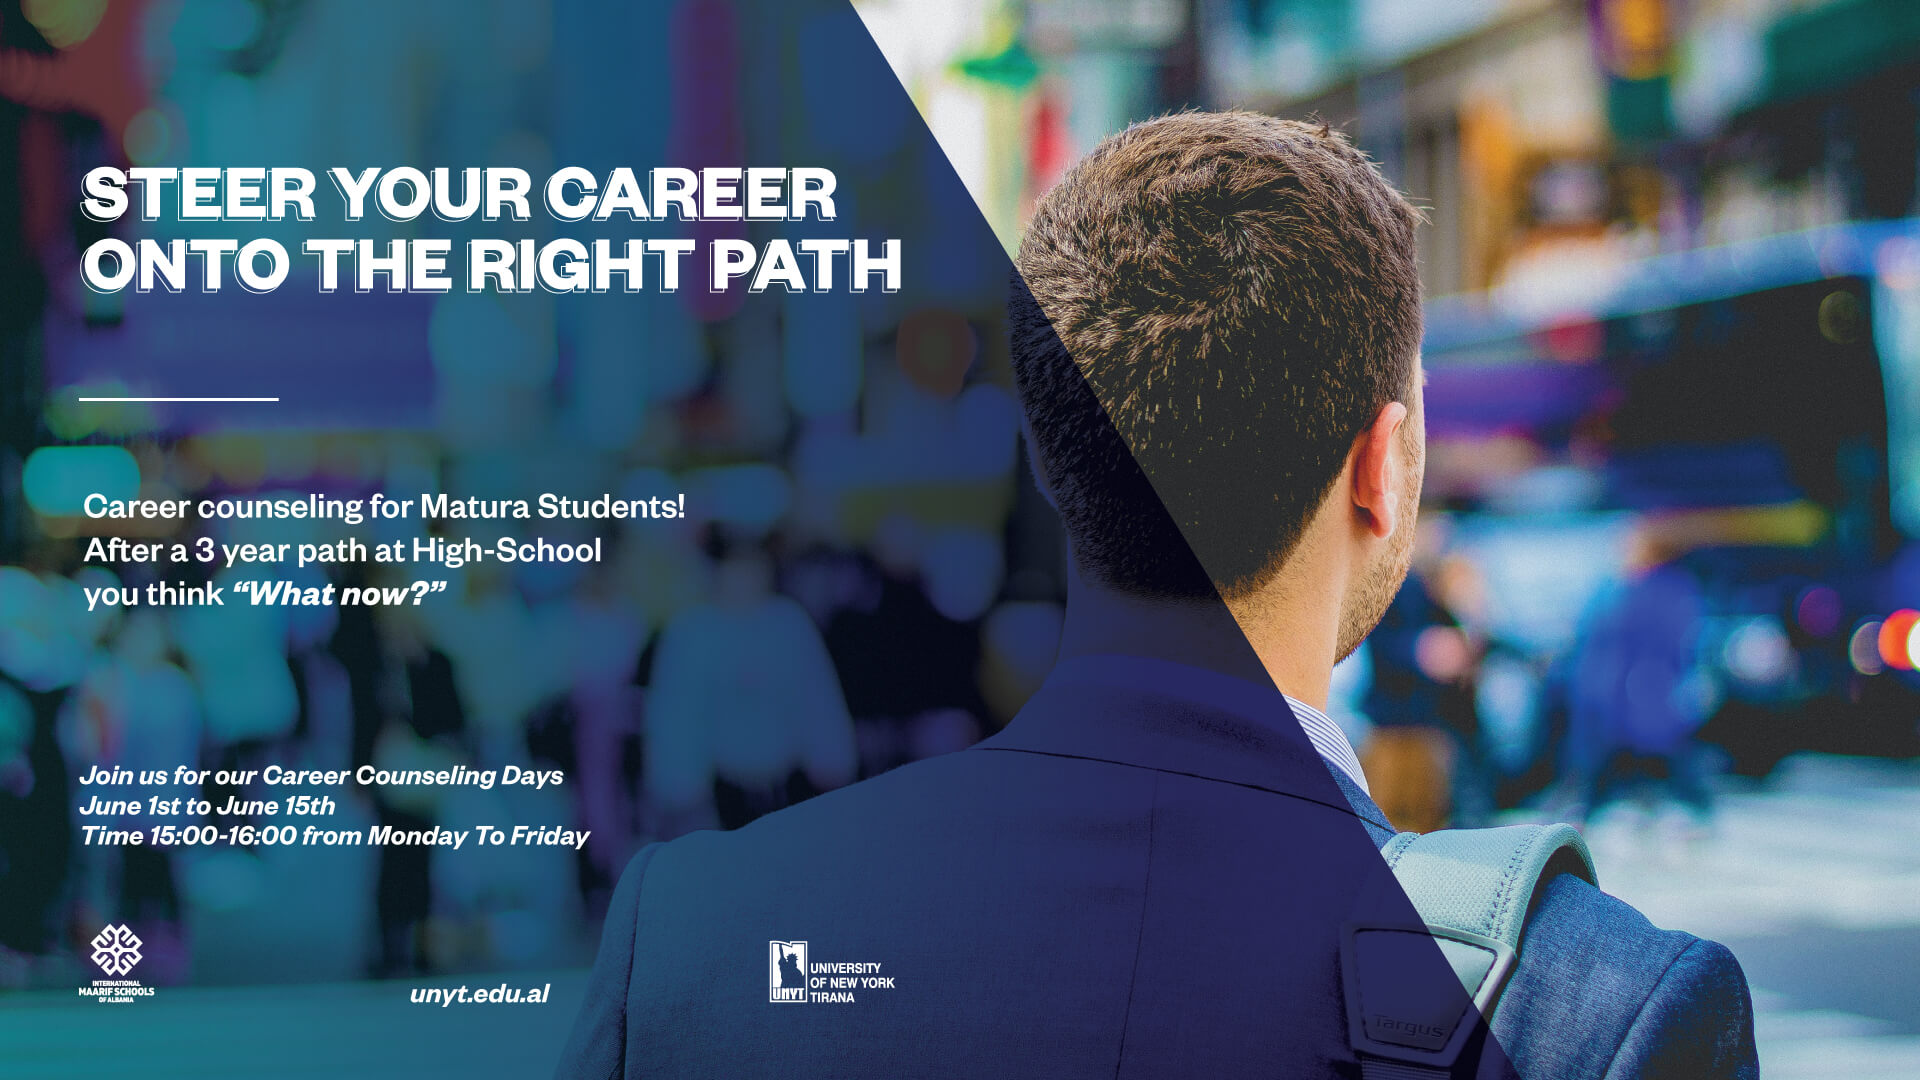 Career counselling for Matura Students!